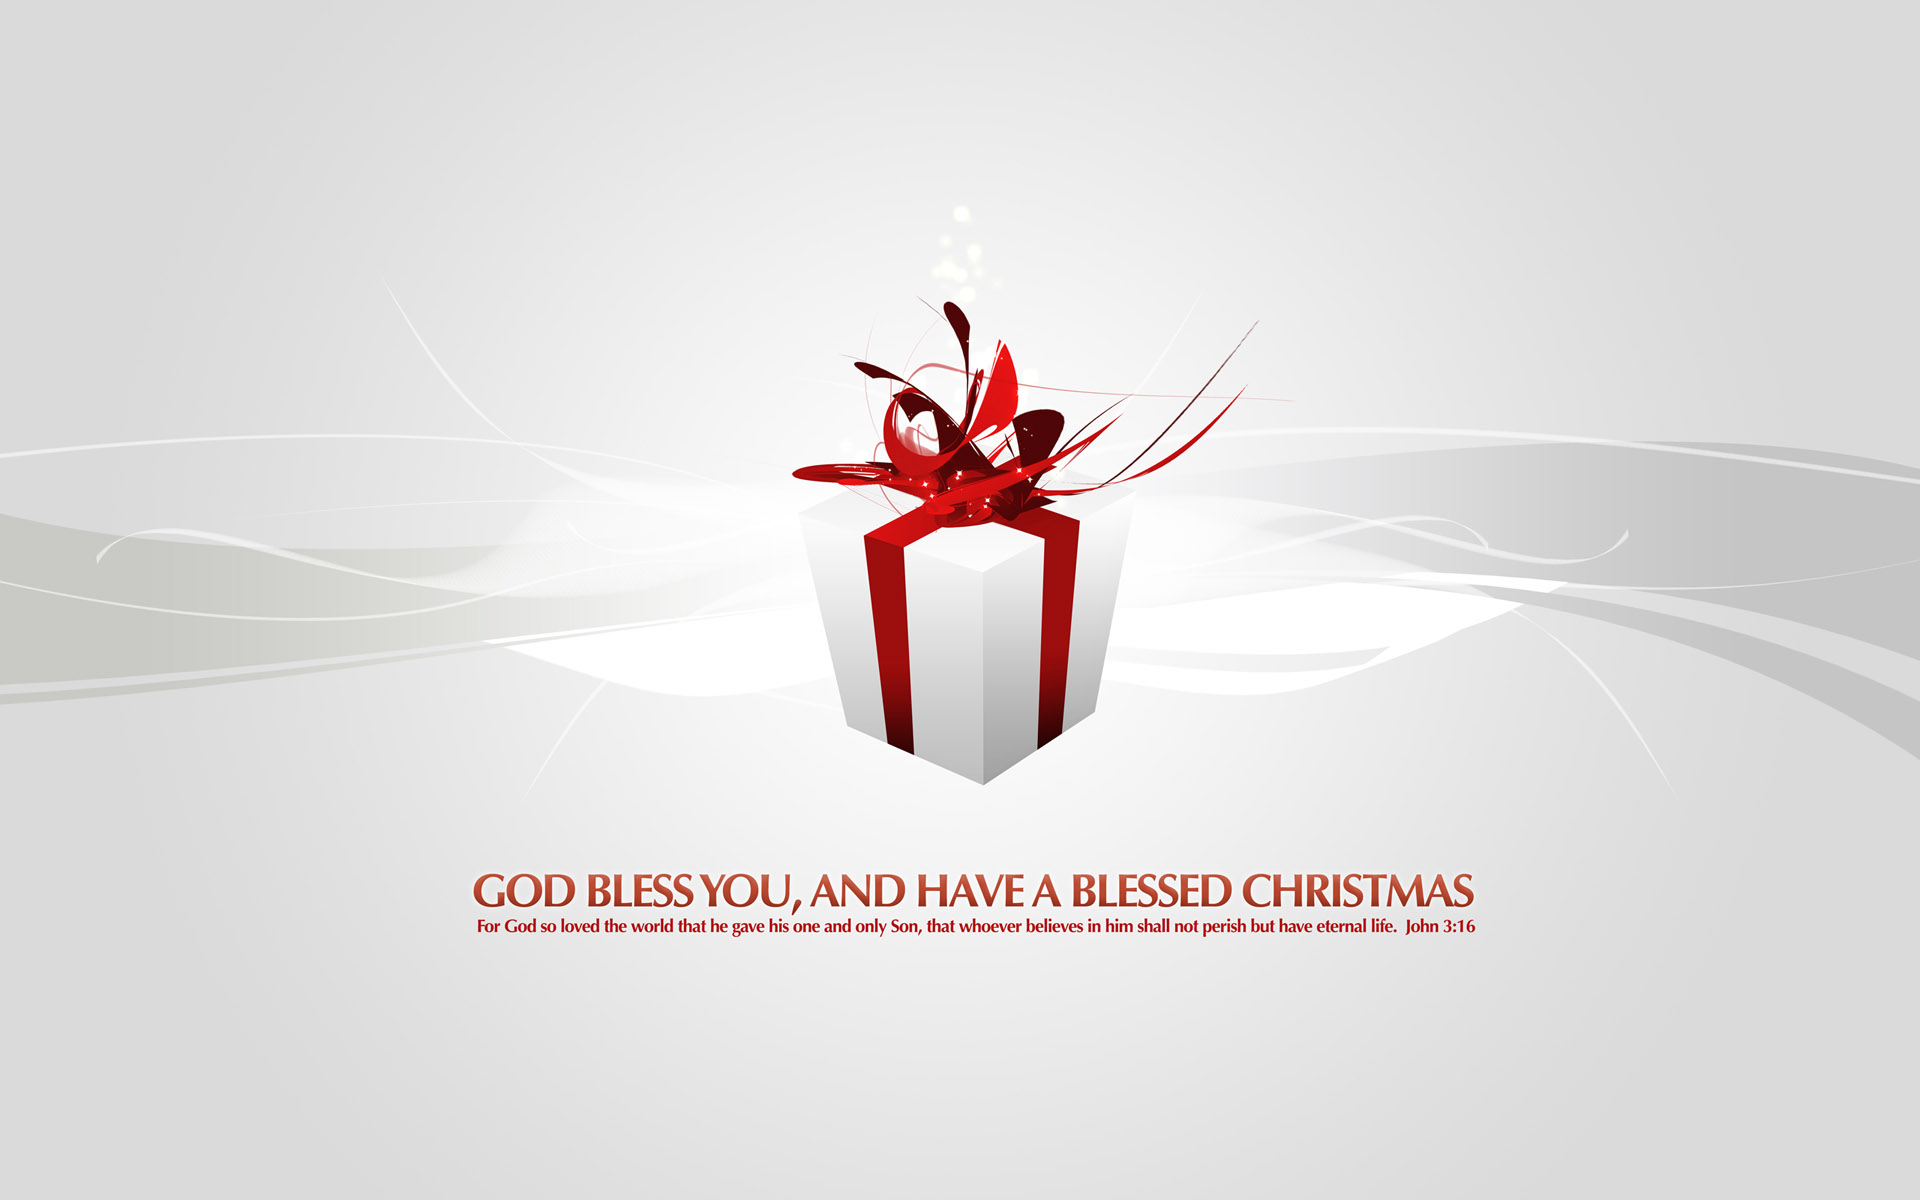 HD Wallpapers Gifts God Bless You